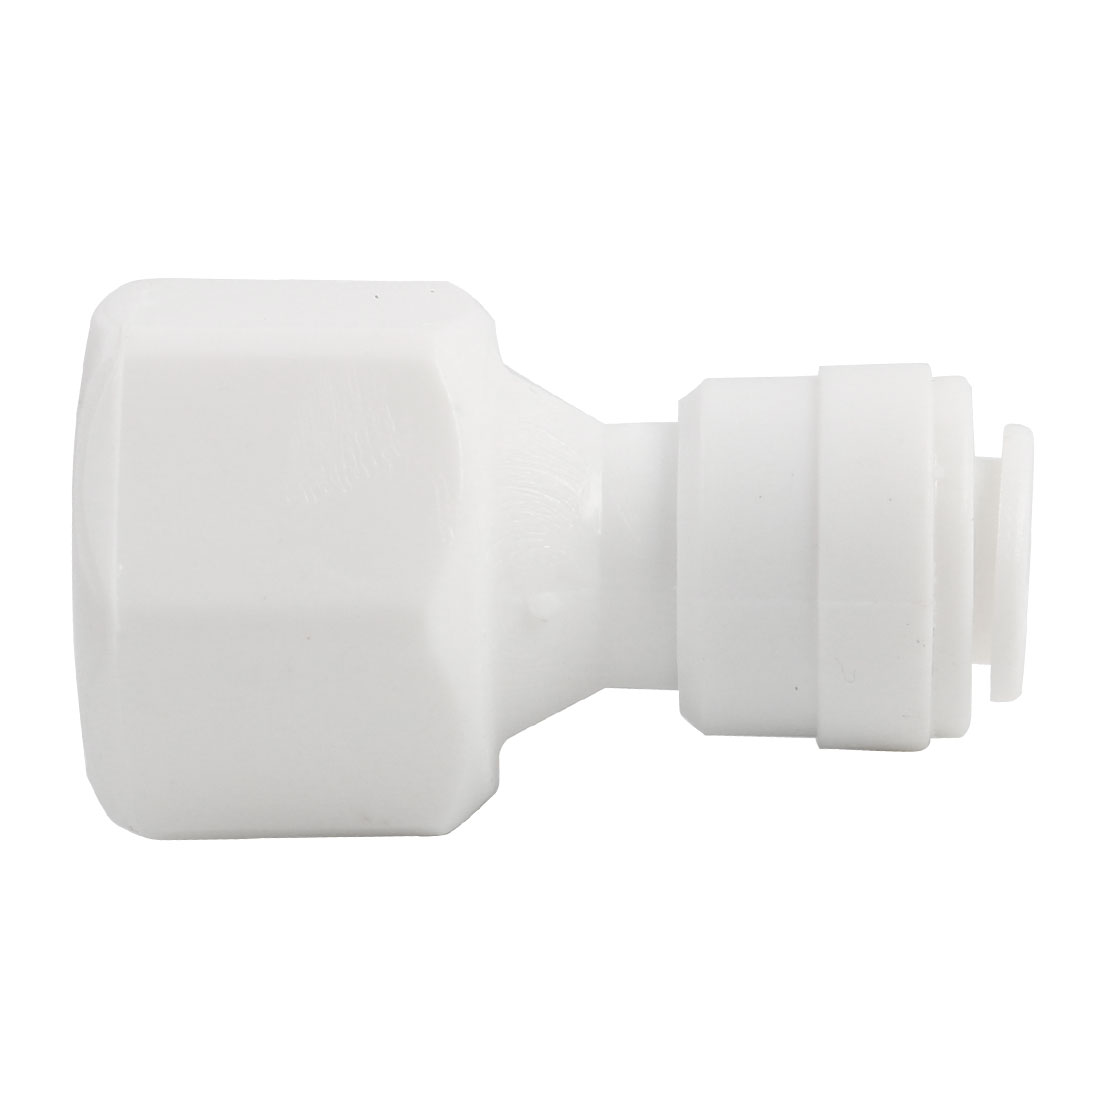 5/8 Inch BSP Female to 1/4 Inch OD Straight Quick Connect Tube Fitting